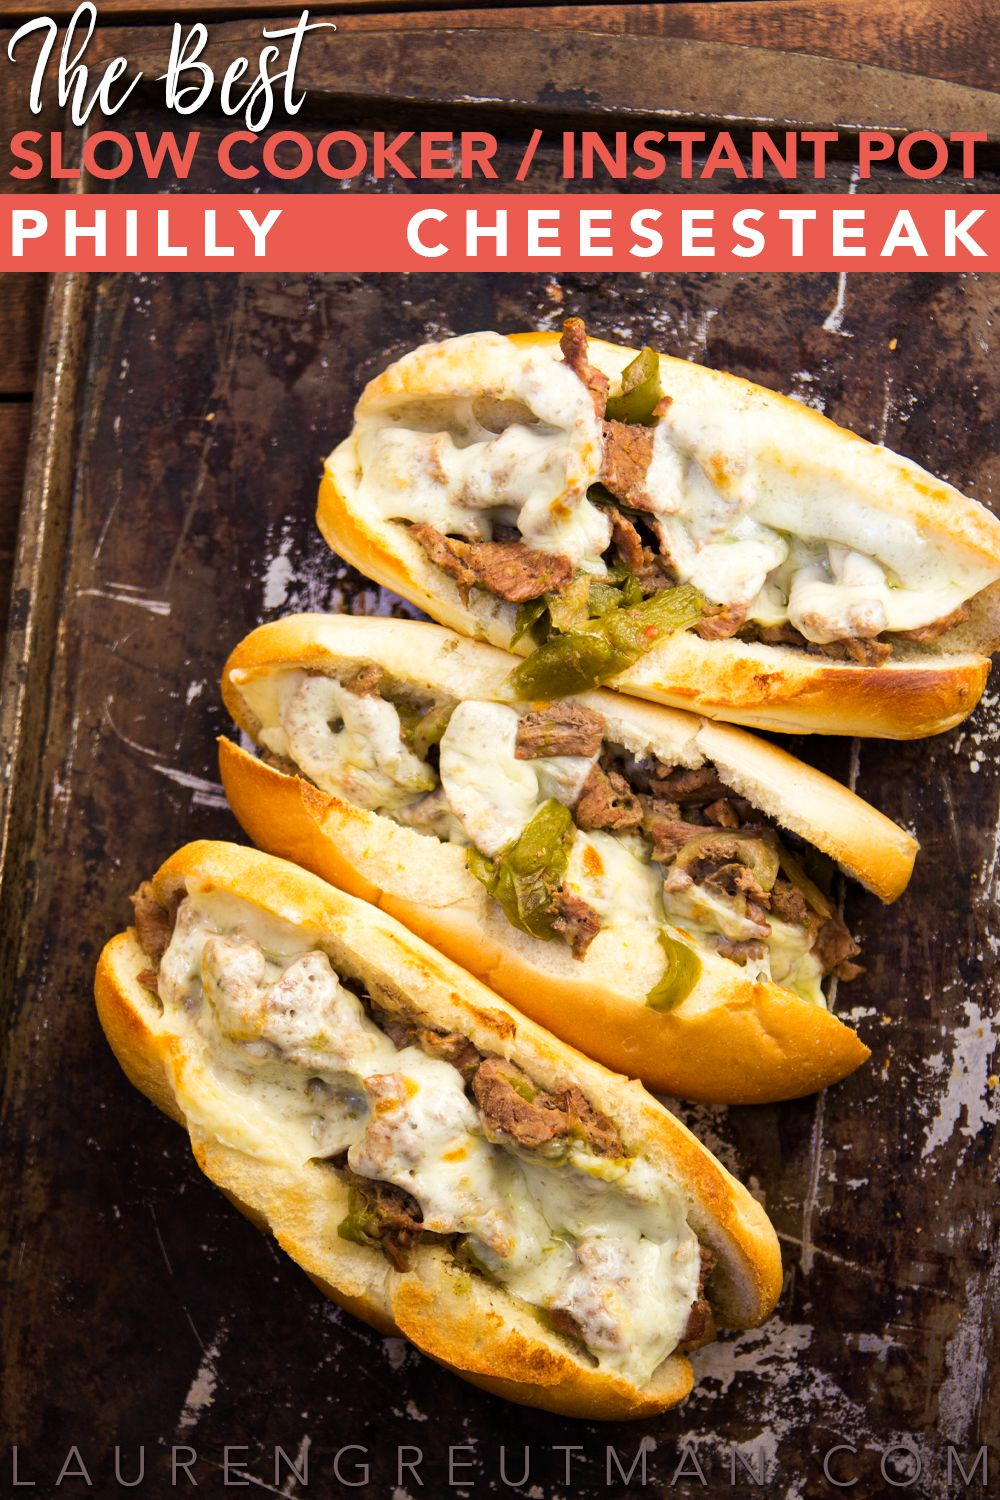 These Slow Cooker Cheesesteak sandwiches are AMAZING! Melt-in-your-mouth good. And I've included Instant Pot instructions as well!